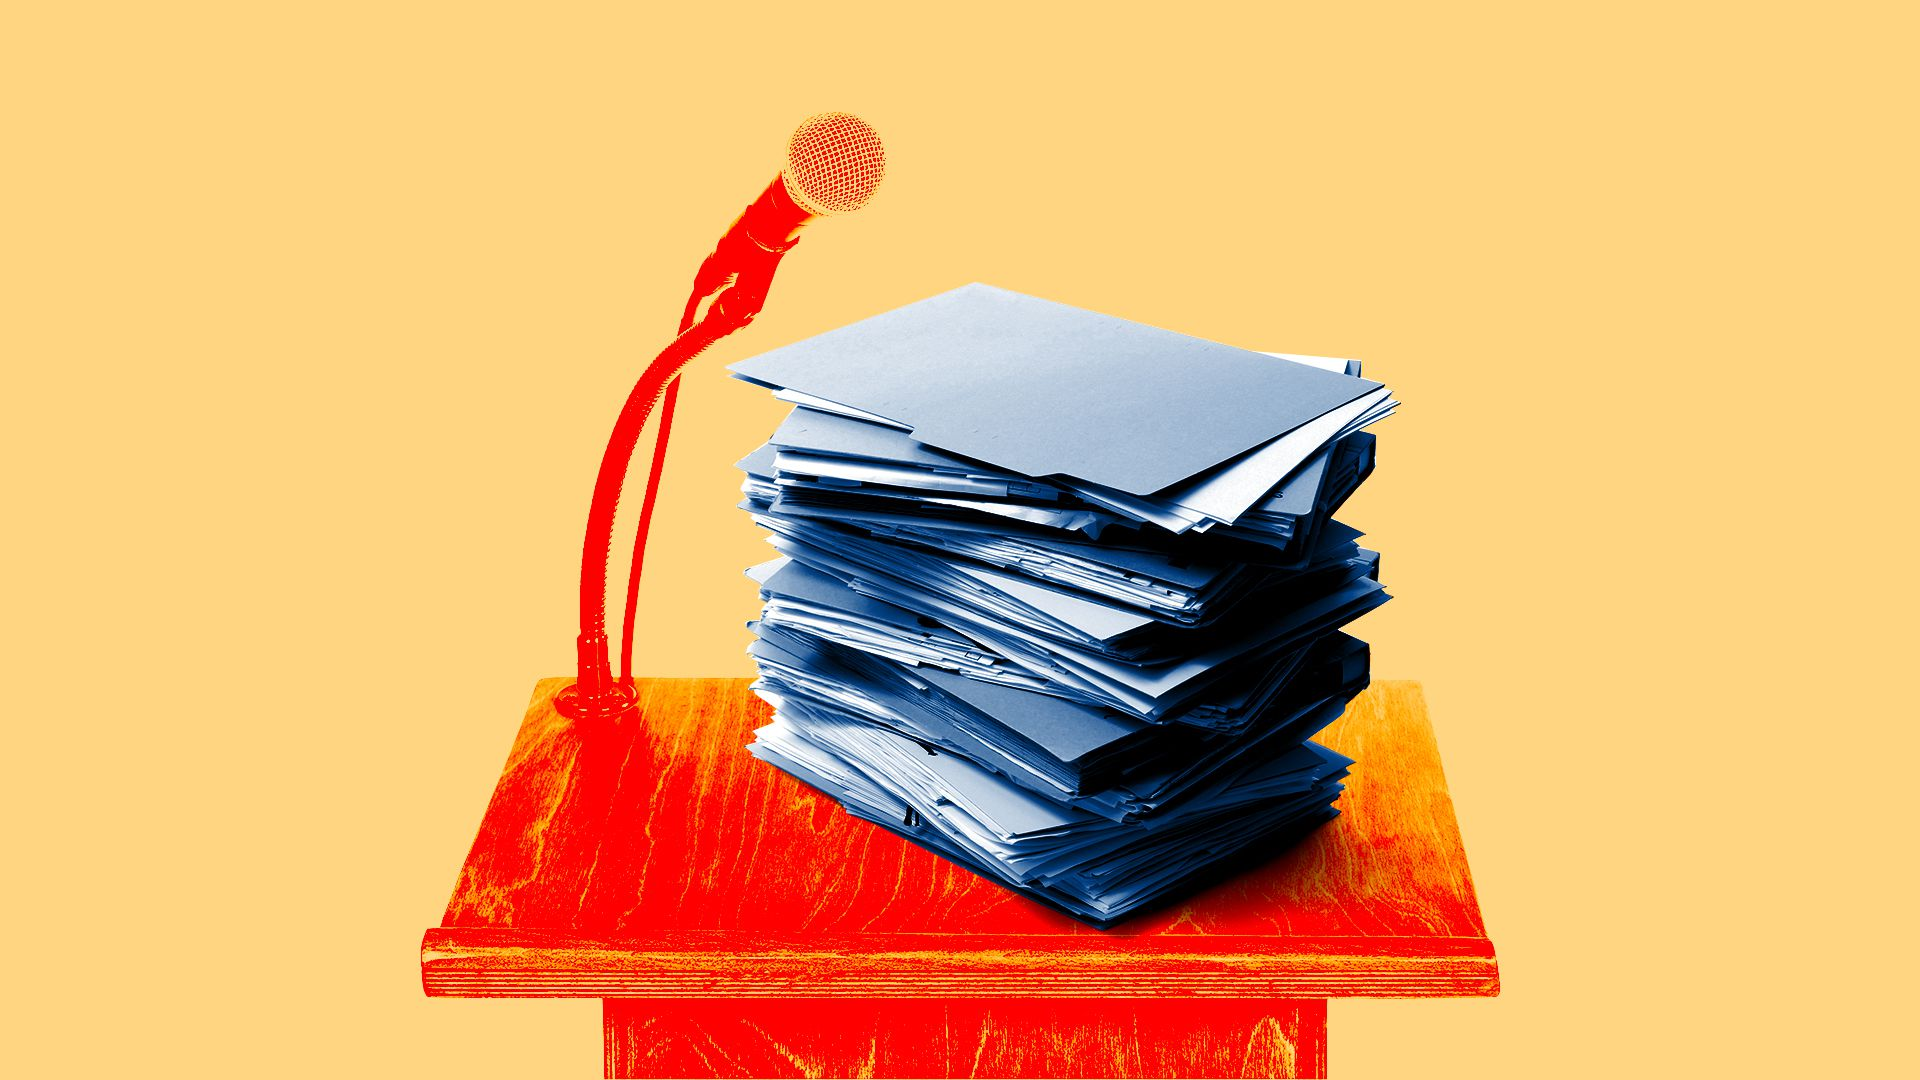 Illustration of a stack of folders on a podium